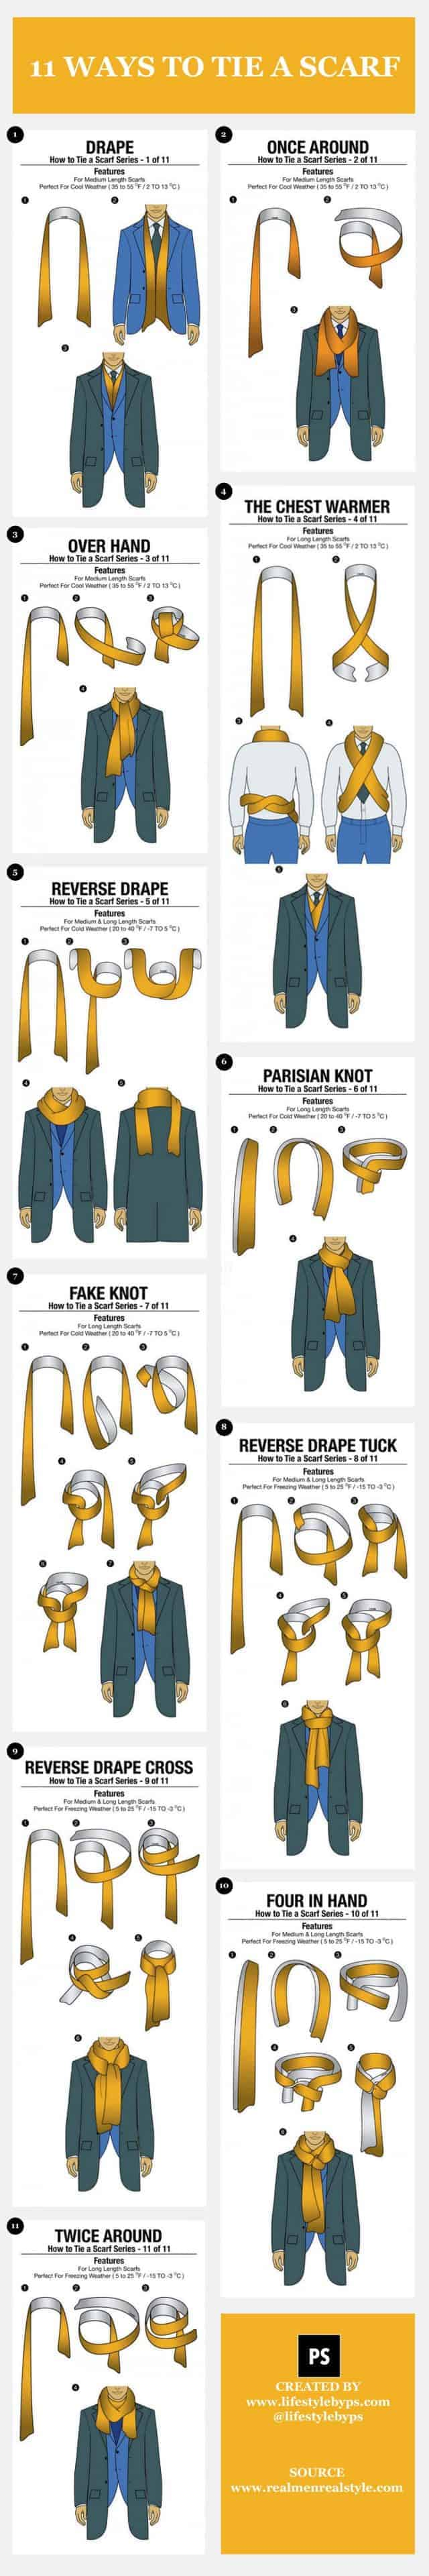 11 simple ways to tie a scarf daily infographic